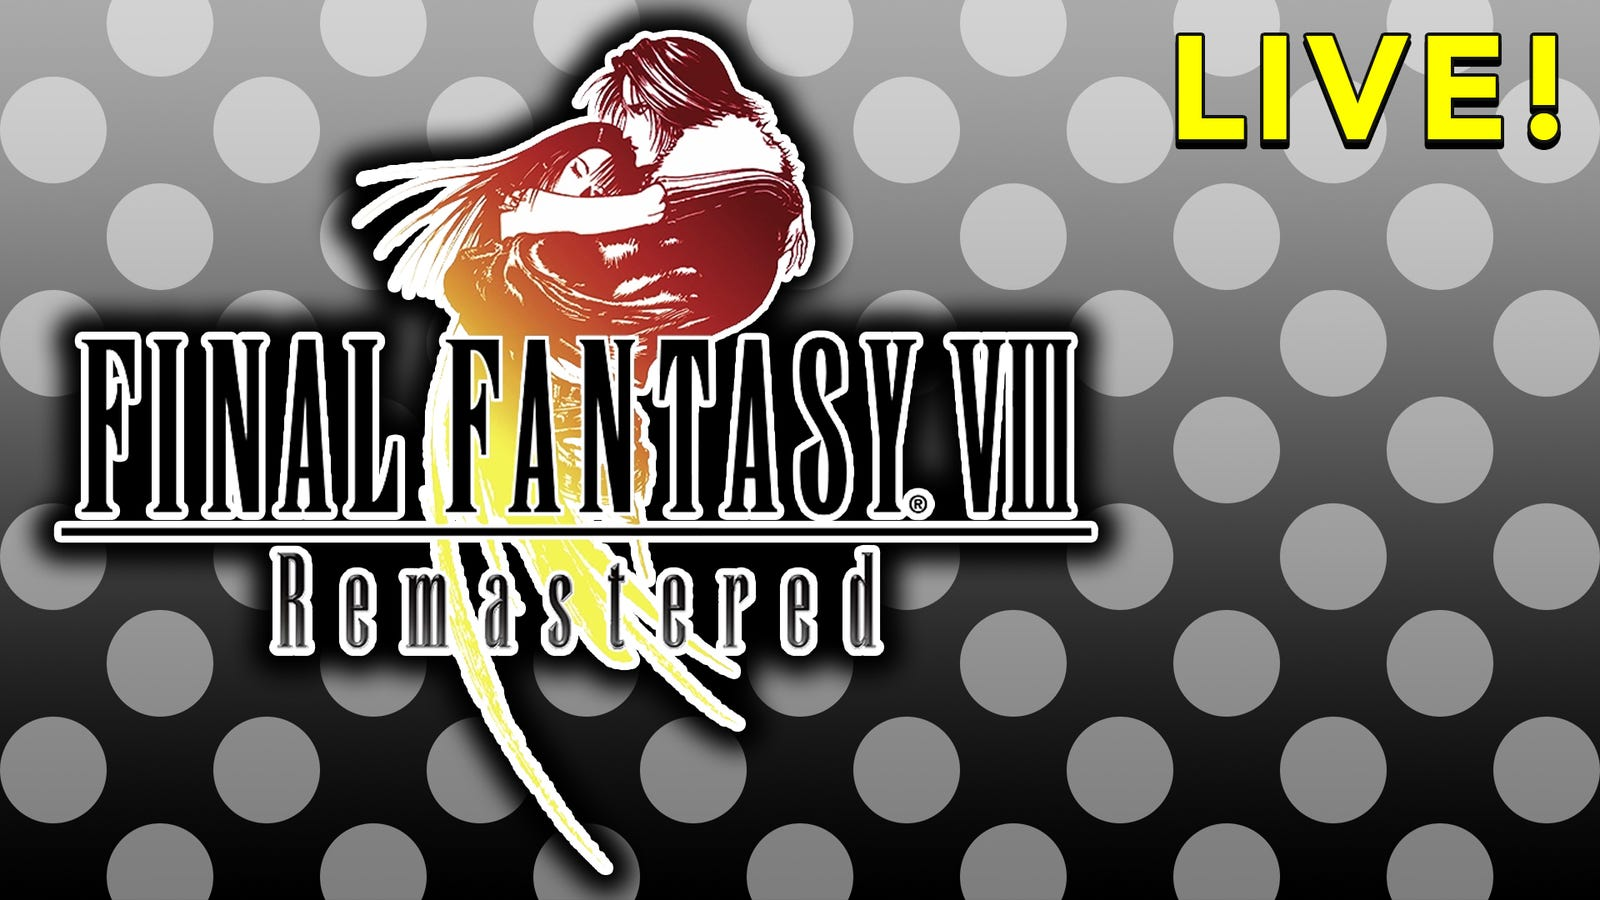 We (Tim Rogers & Jason Schreier) are playing Final Fantasy VIII Remastered on the Nintendo Switc